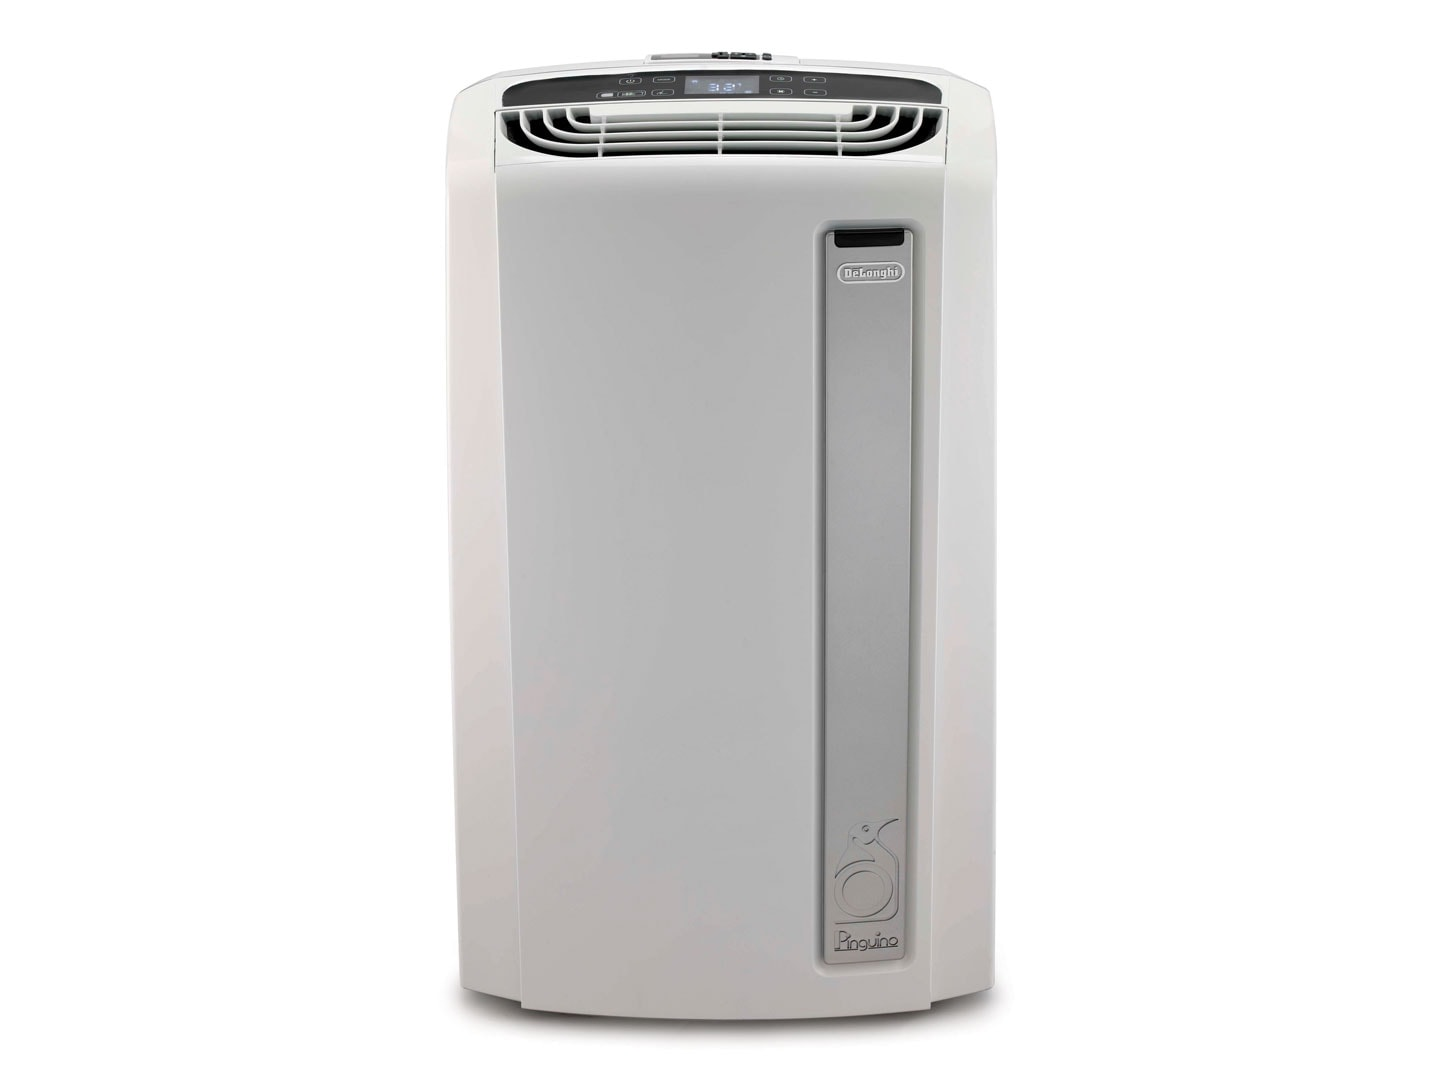 PACN120EW Pinguino Portable Air Conditioner